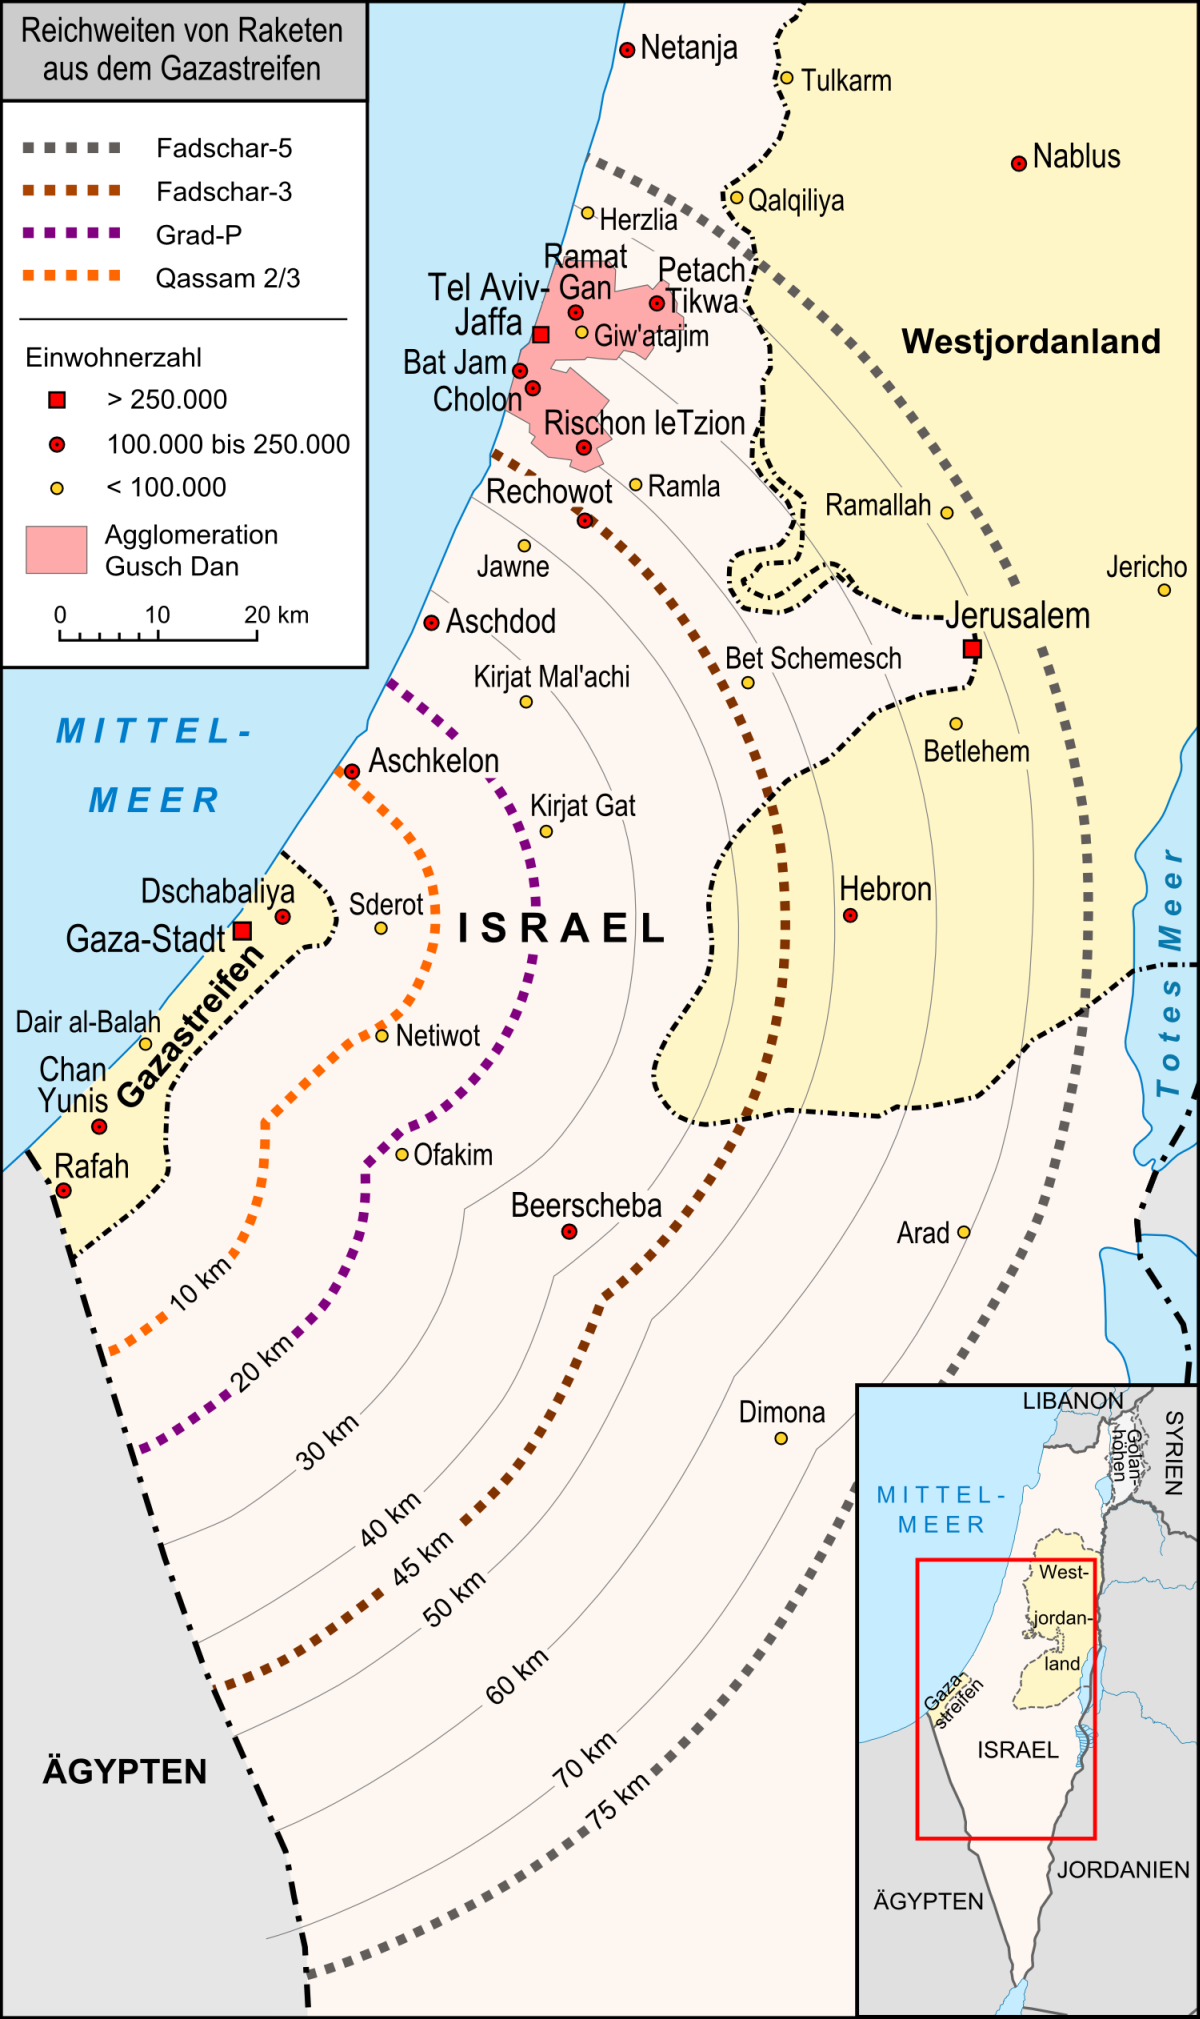 Map showing reach of Hamas missiles (Lencer [CC BY-SA 3.0 (https://creativecommons.org/licenses/by-sa/3.0)], via Wikimedia Commons)